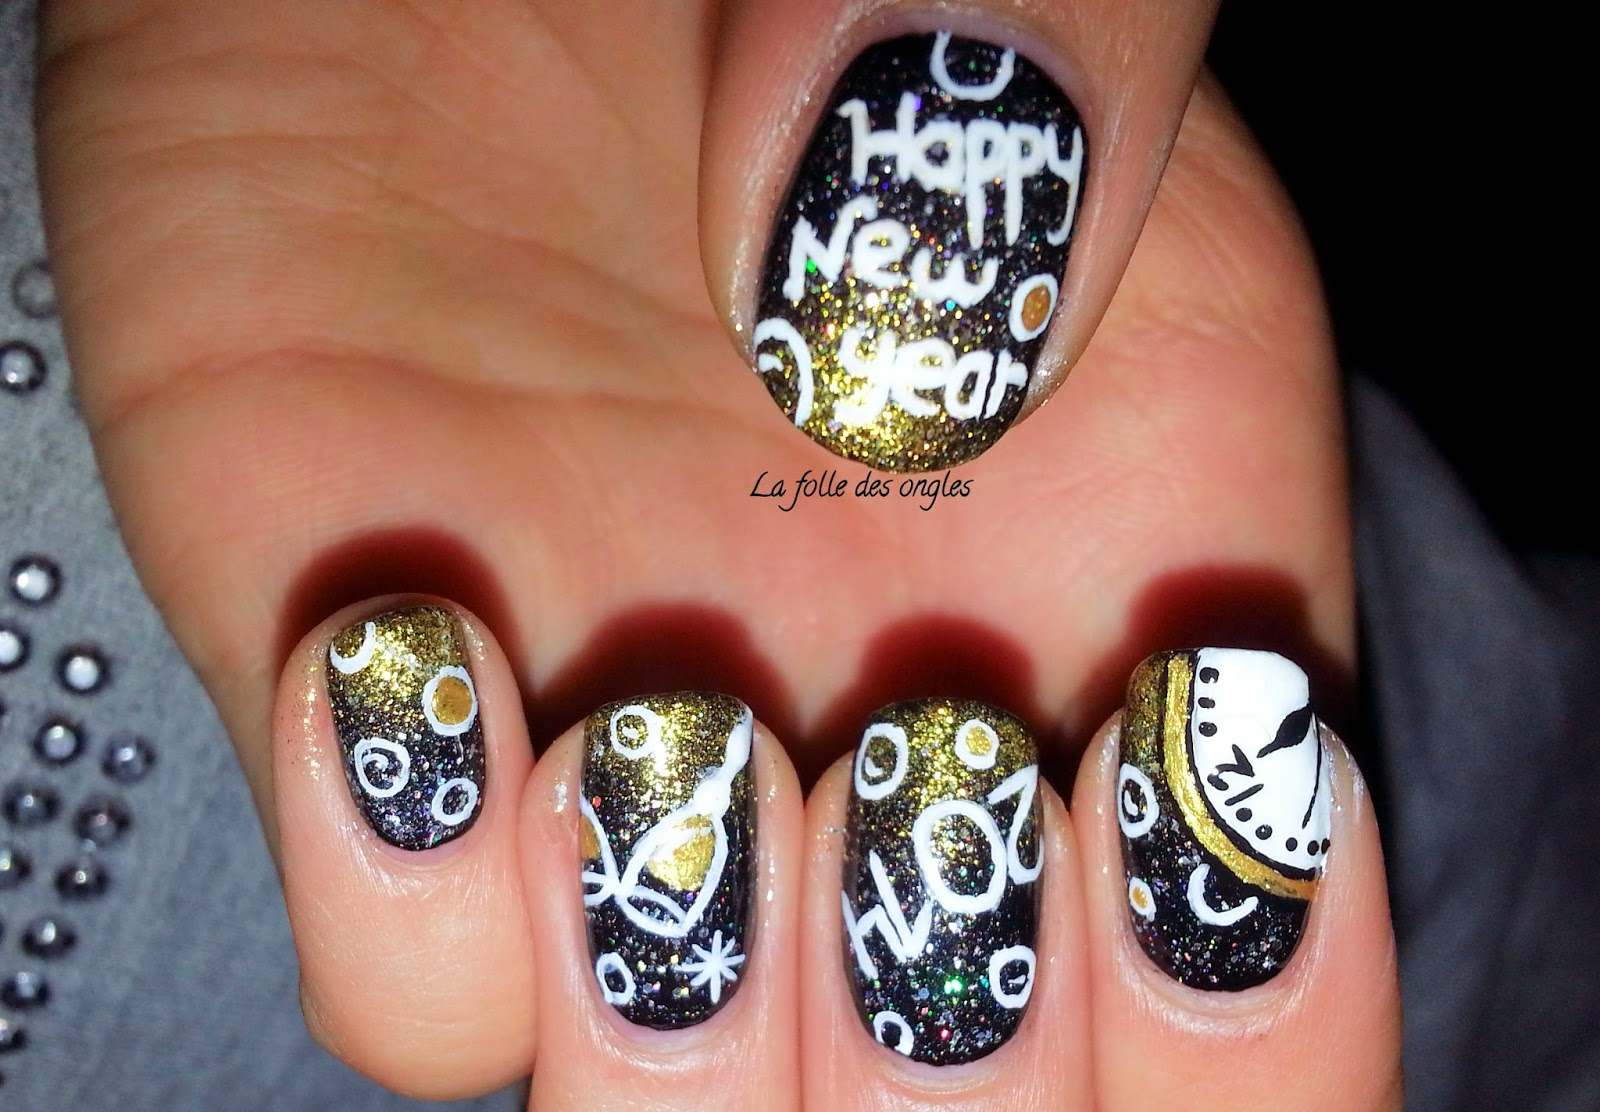 La folle des ongles nouvel an 2014 - Nail art nouvel an ...